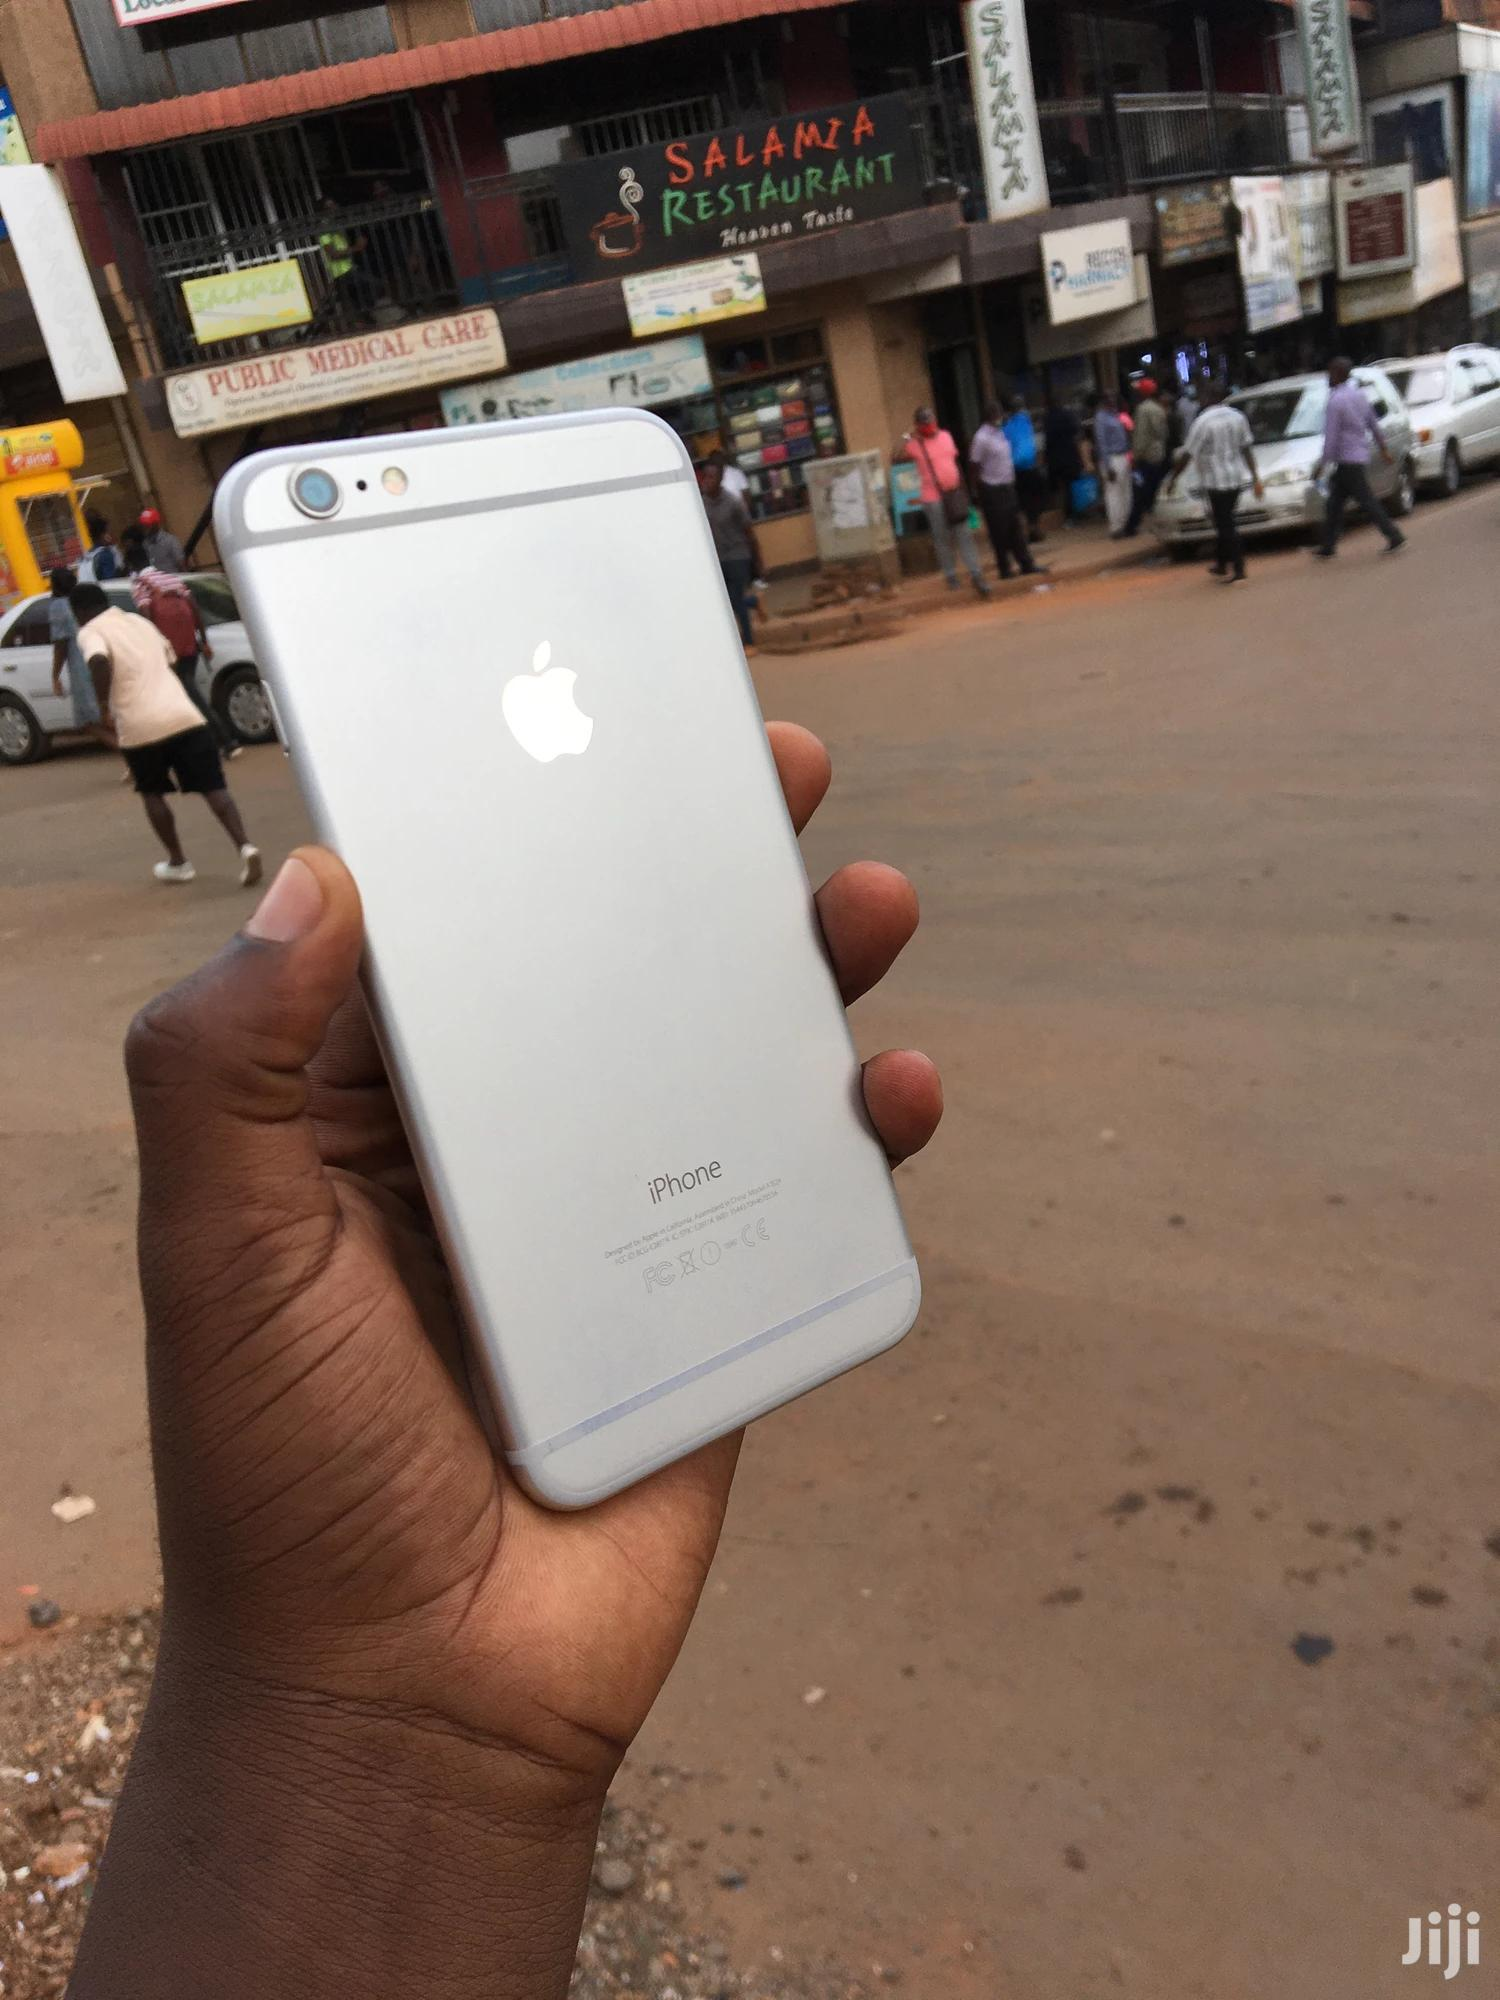 Apple iPhone 6 Plus 64 GB Gray | Mobile Phones for sale in Kampala, Central Region, Uganda